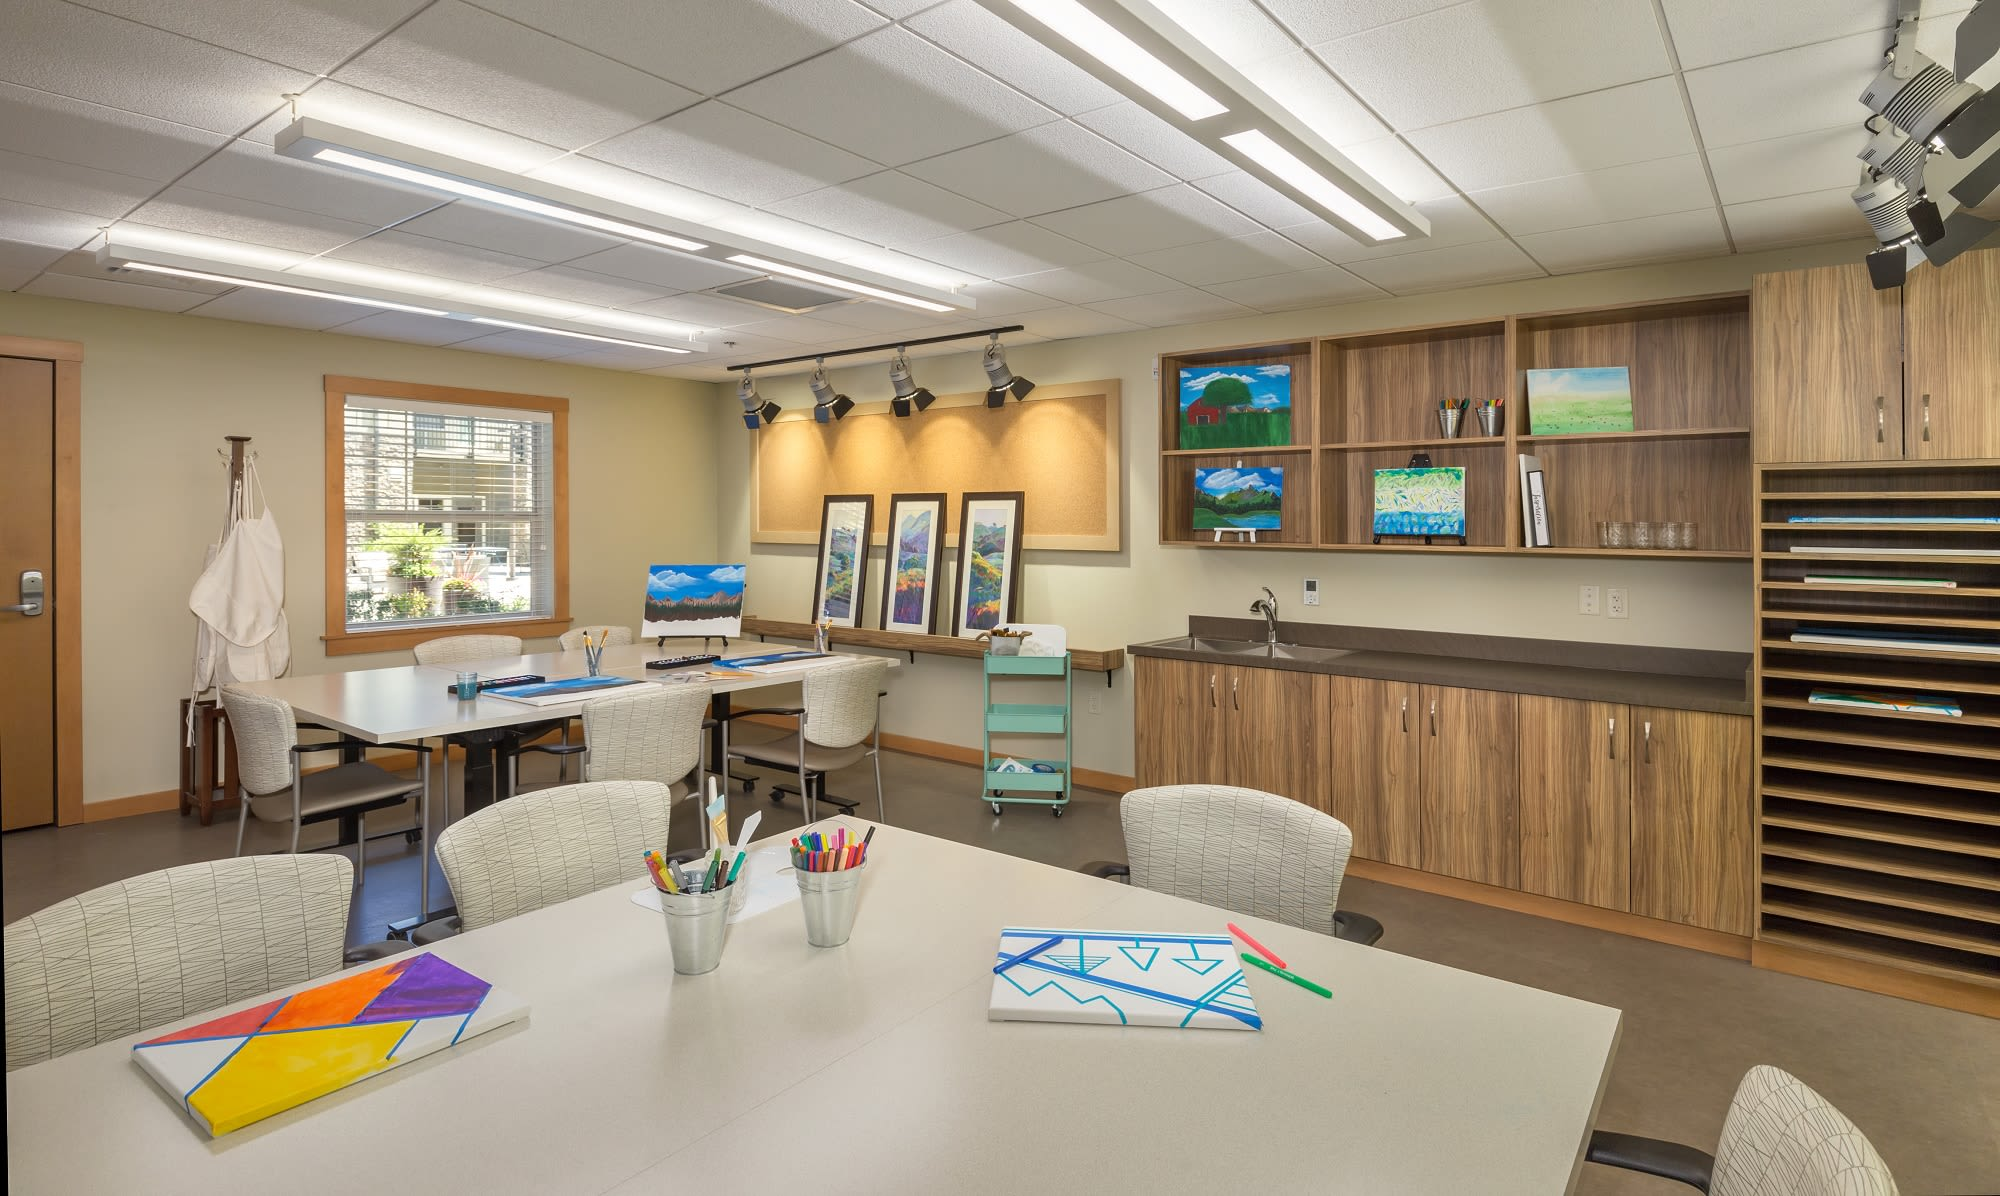 Enjoy the arts in our paint studio at our senior living community in Eugene Oregon